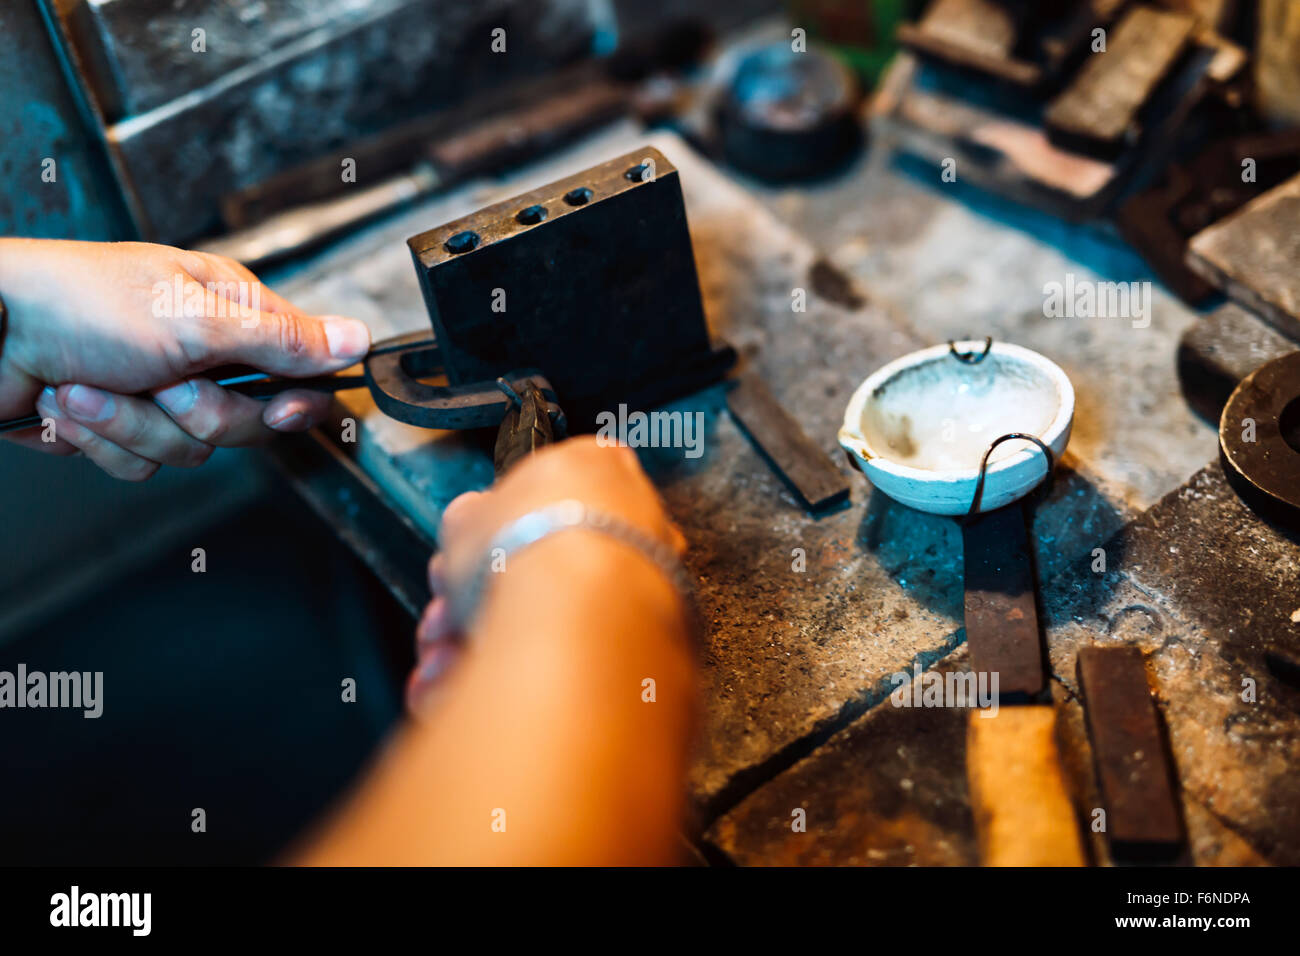 Goldsmith crafting jewels the traditional way - Stock Image